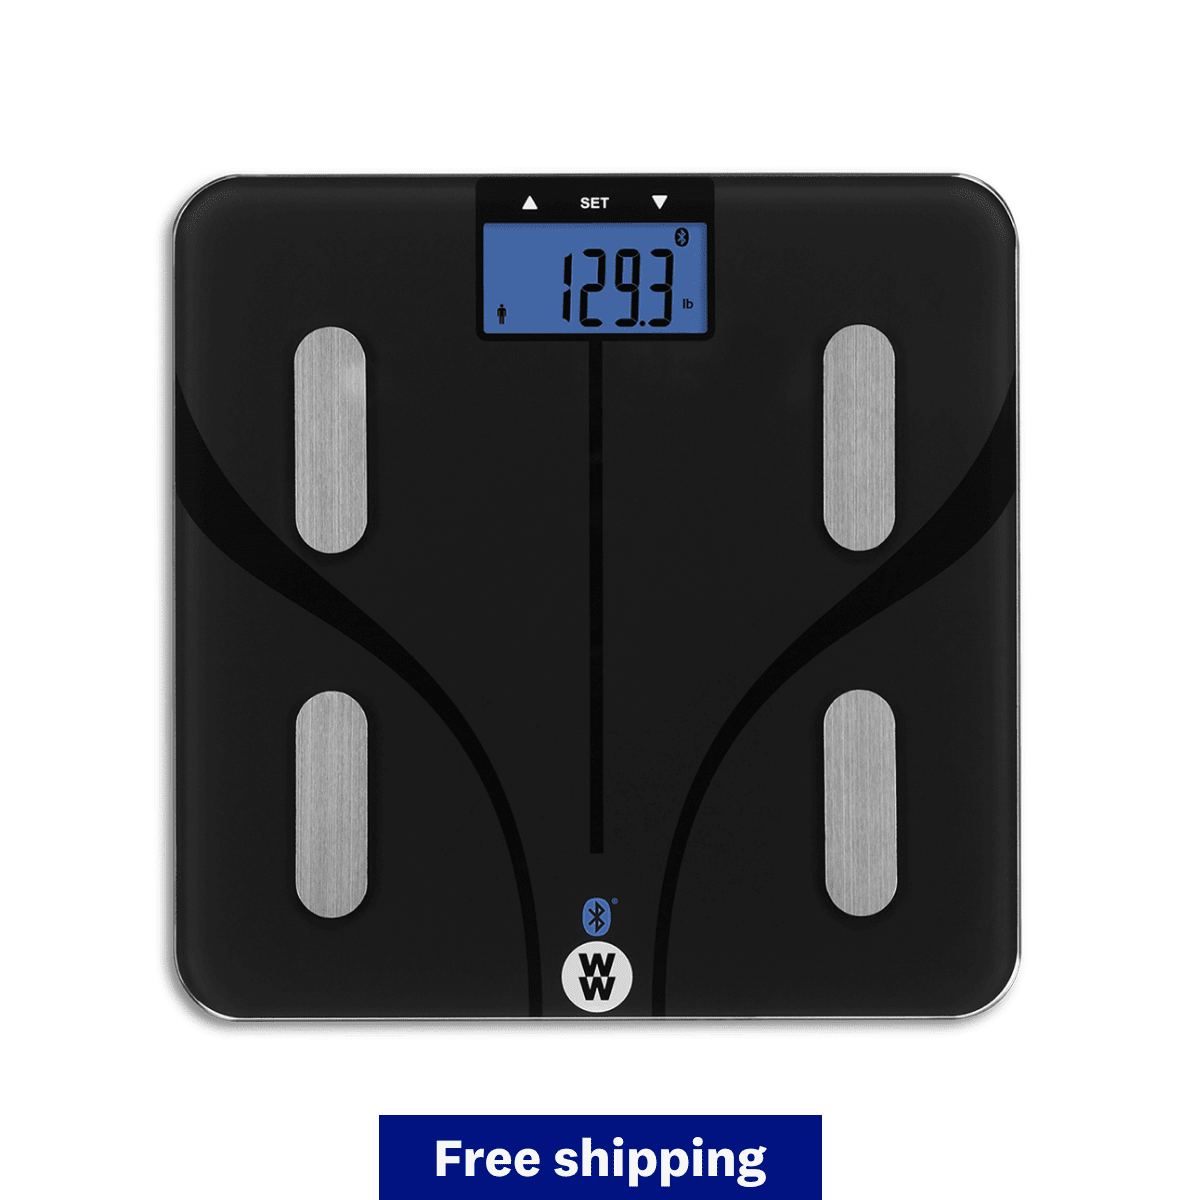 WW Compact Body Analysis Bluetooth Scale - qualifies for free shipping